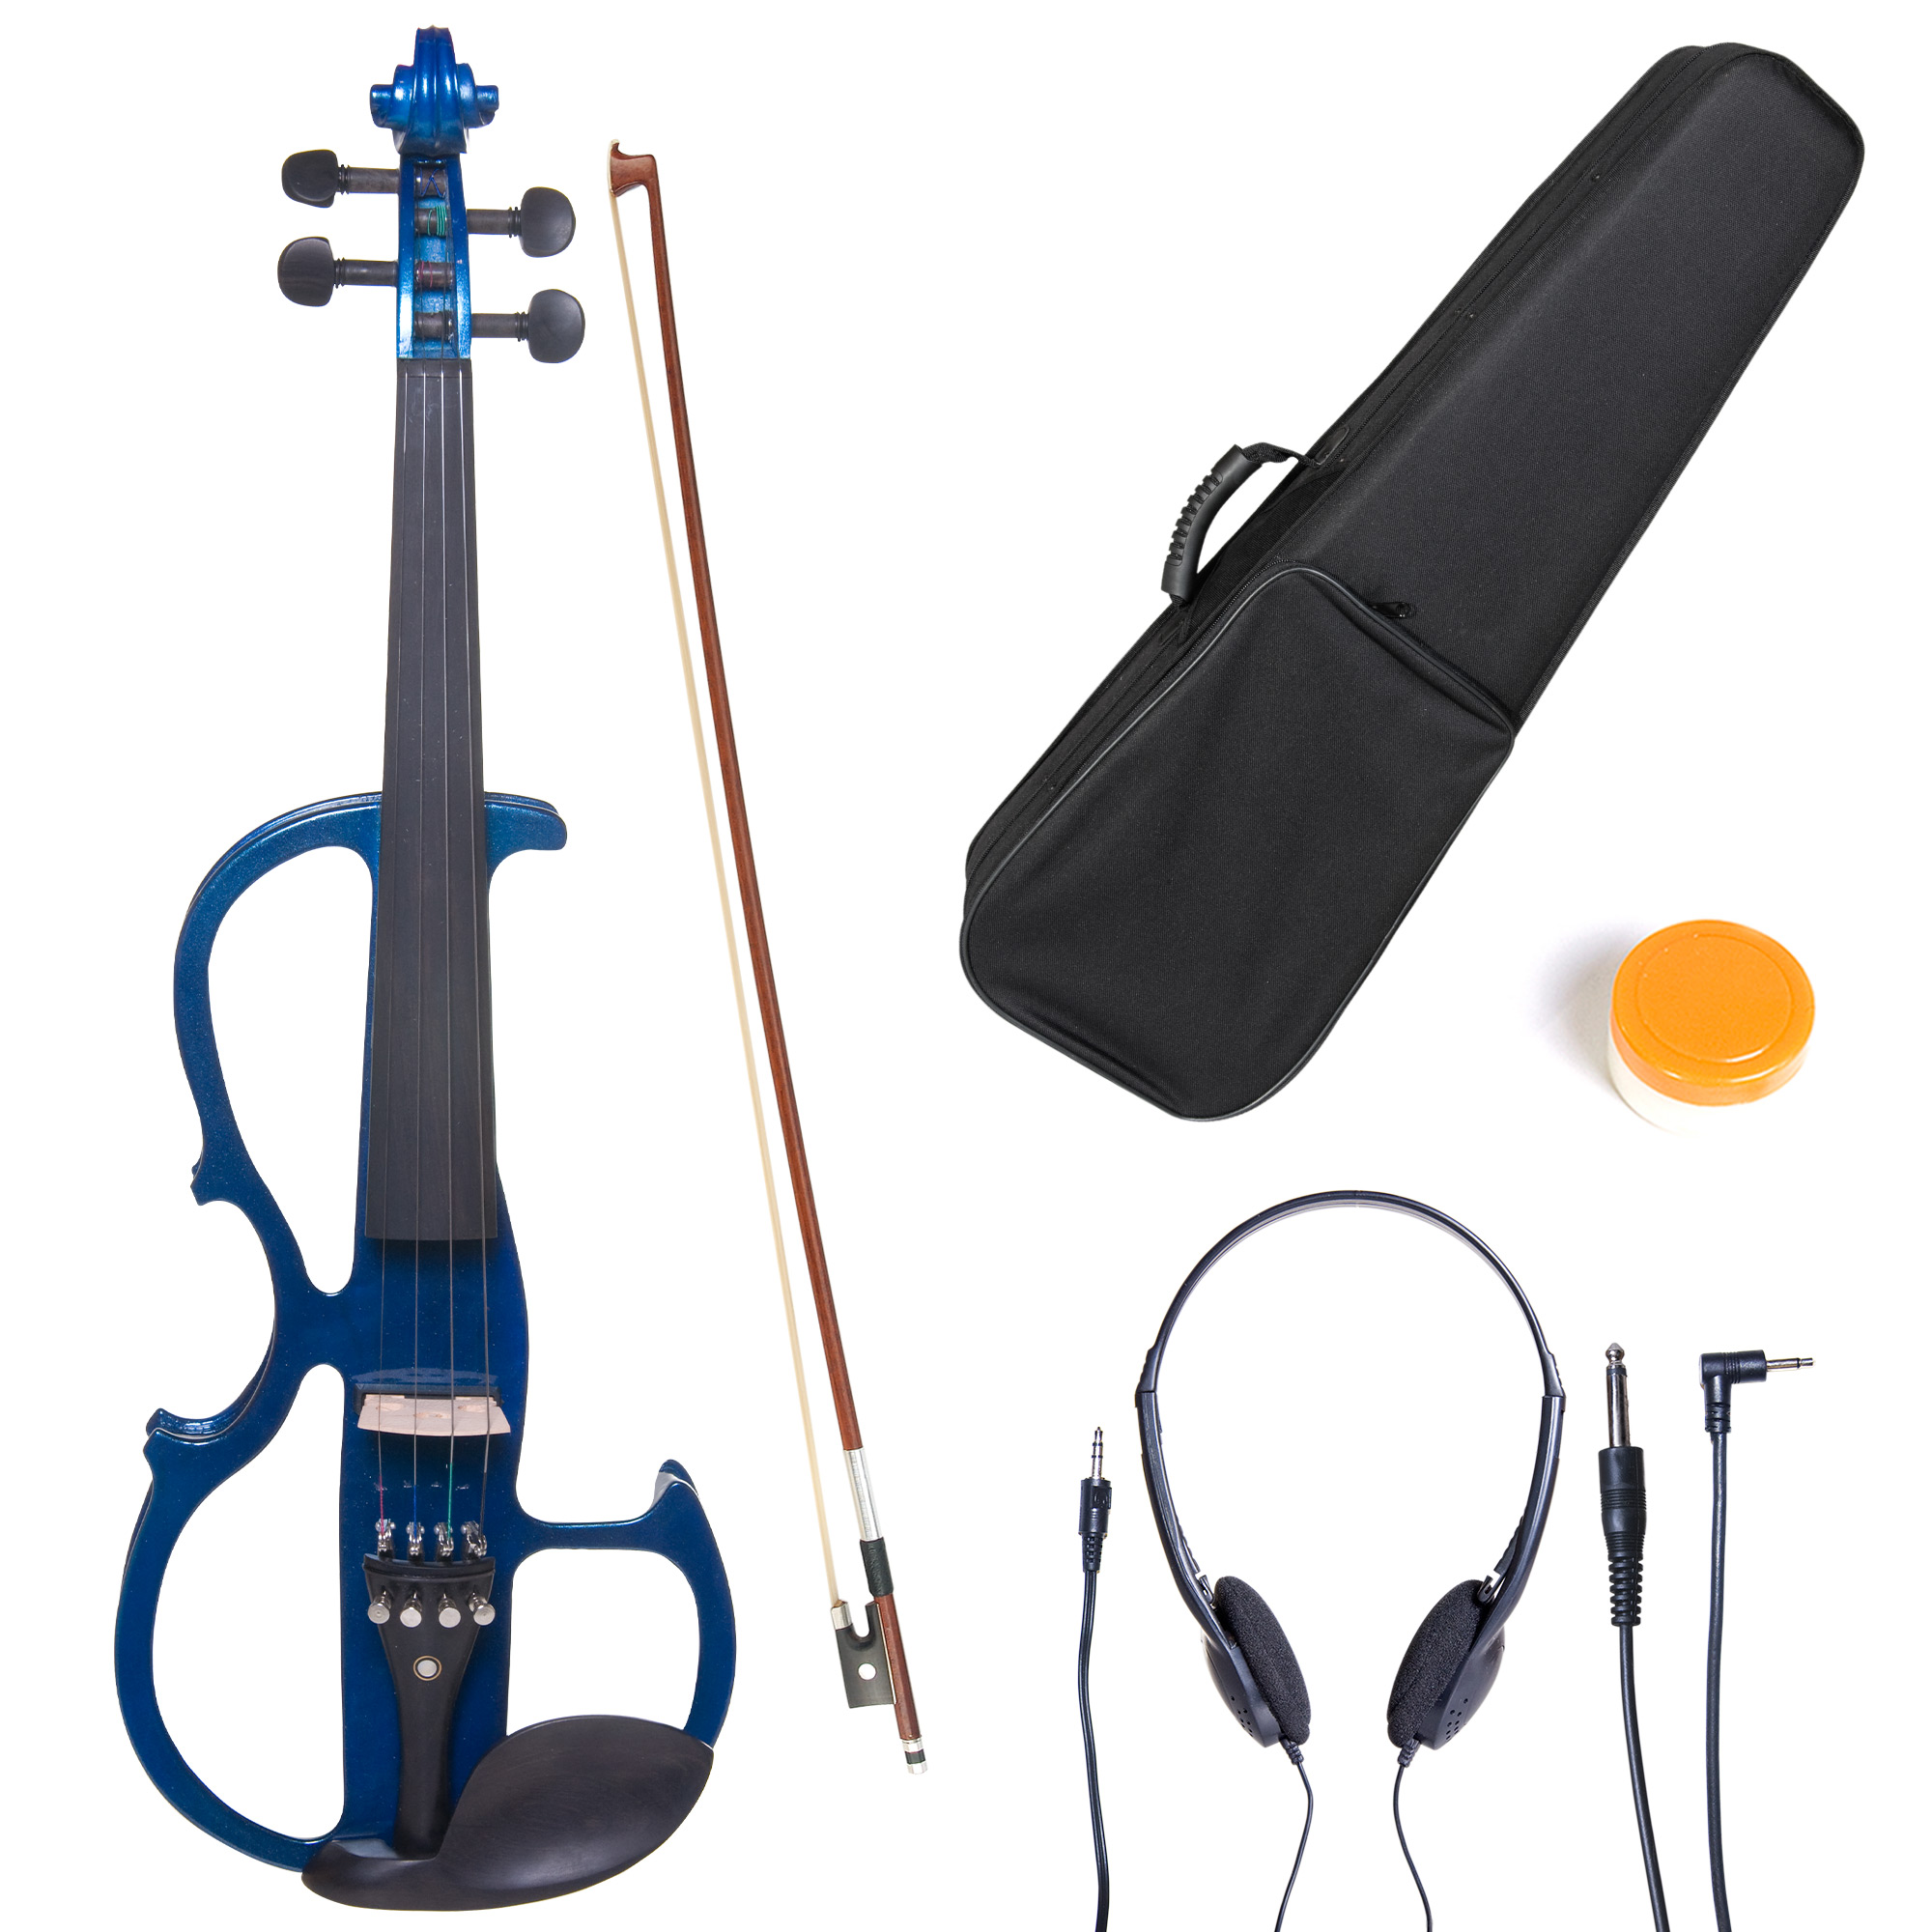 Cecilio Full Size Left-Handed Solid Wood Electric Silent Violin with Ebony Fittings-L4/4CEVN-L2BL Metallic Blue